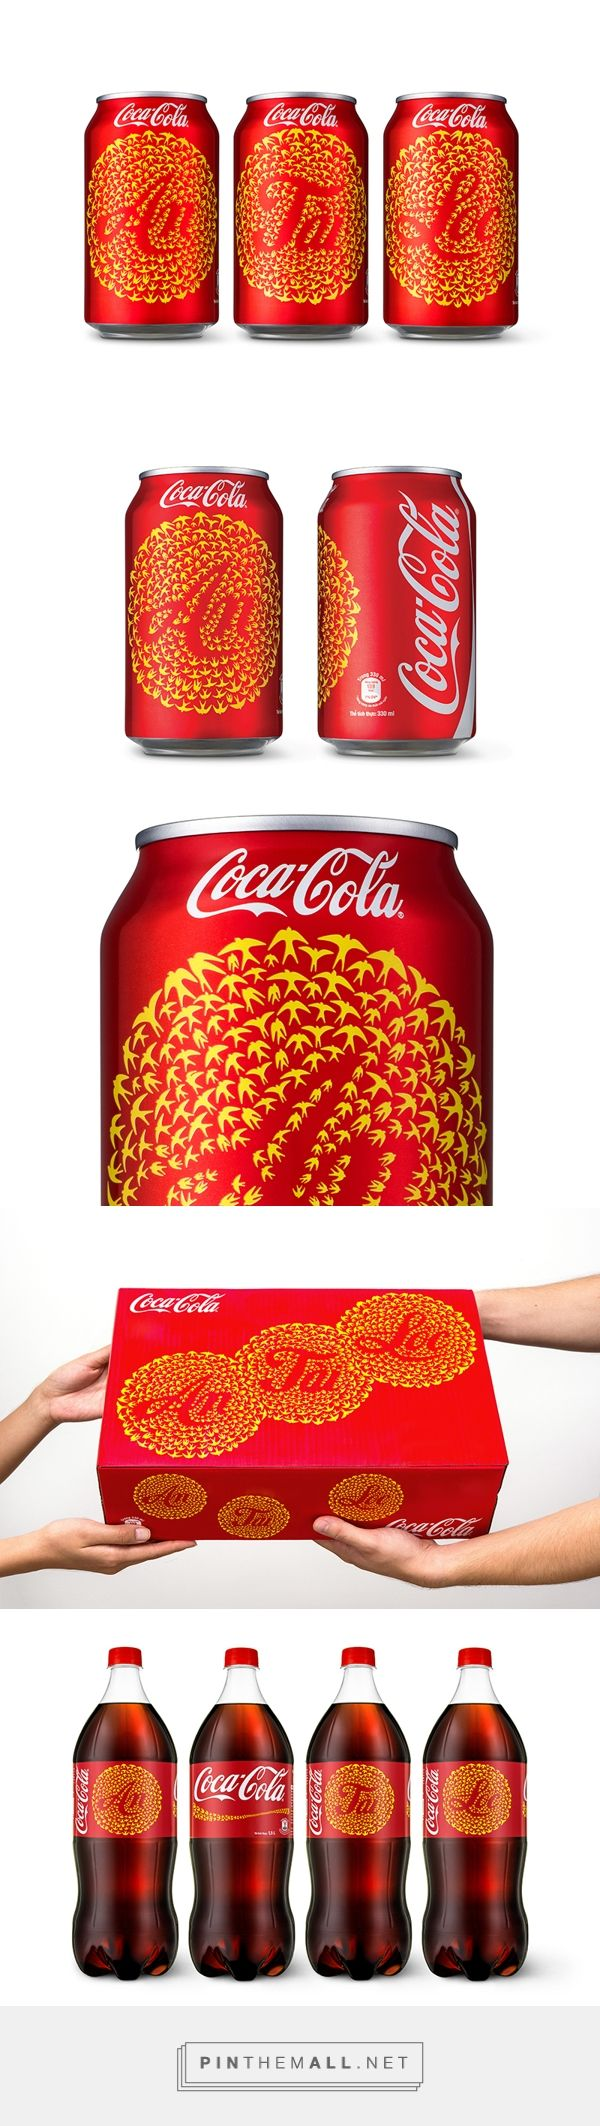 Coca-Cola Tết 2014  Tết (Lunar New Year), is the most celebrated holiday in Vietnam. It's a time for sharing good fortune, happiness and new years wishes with family and friends. Coca-Cola is widely consumed during this festive season.